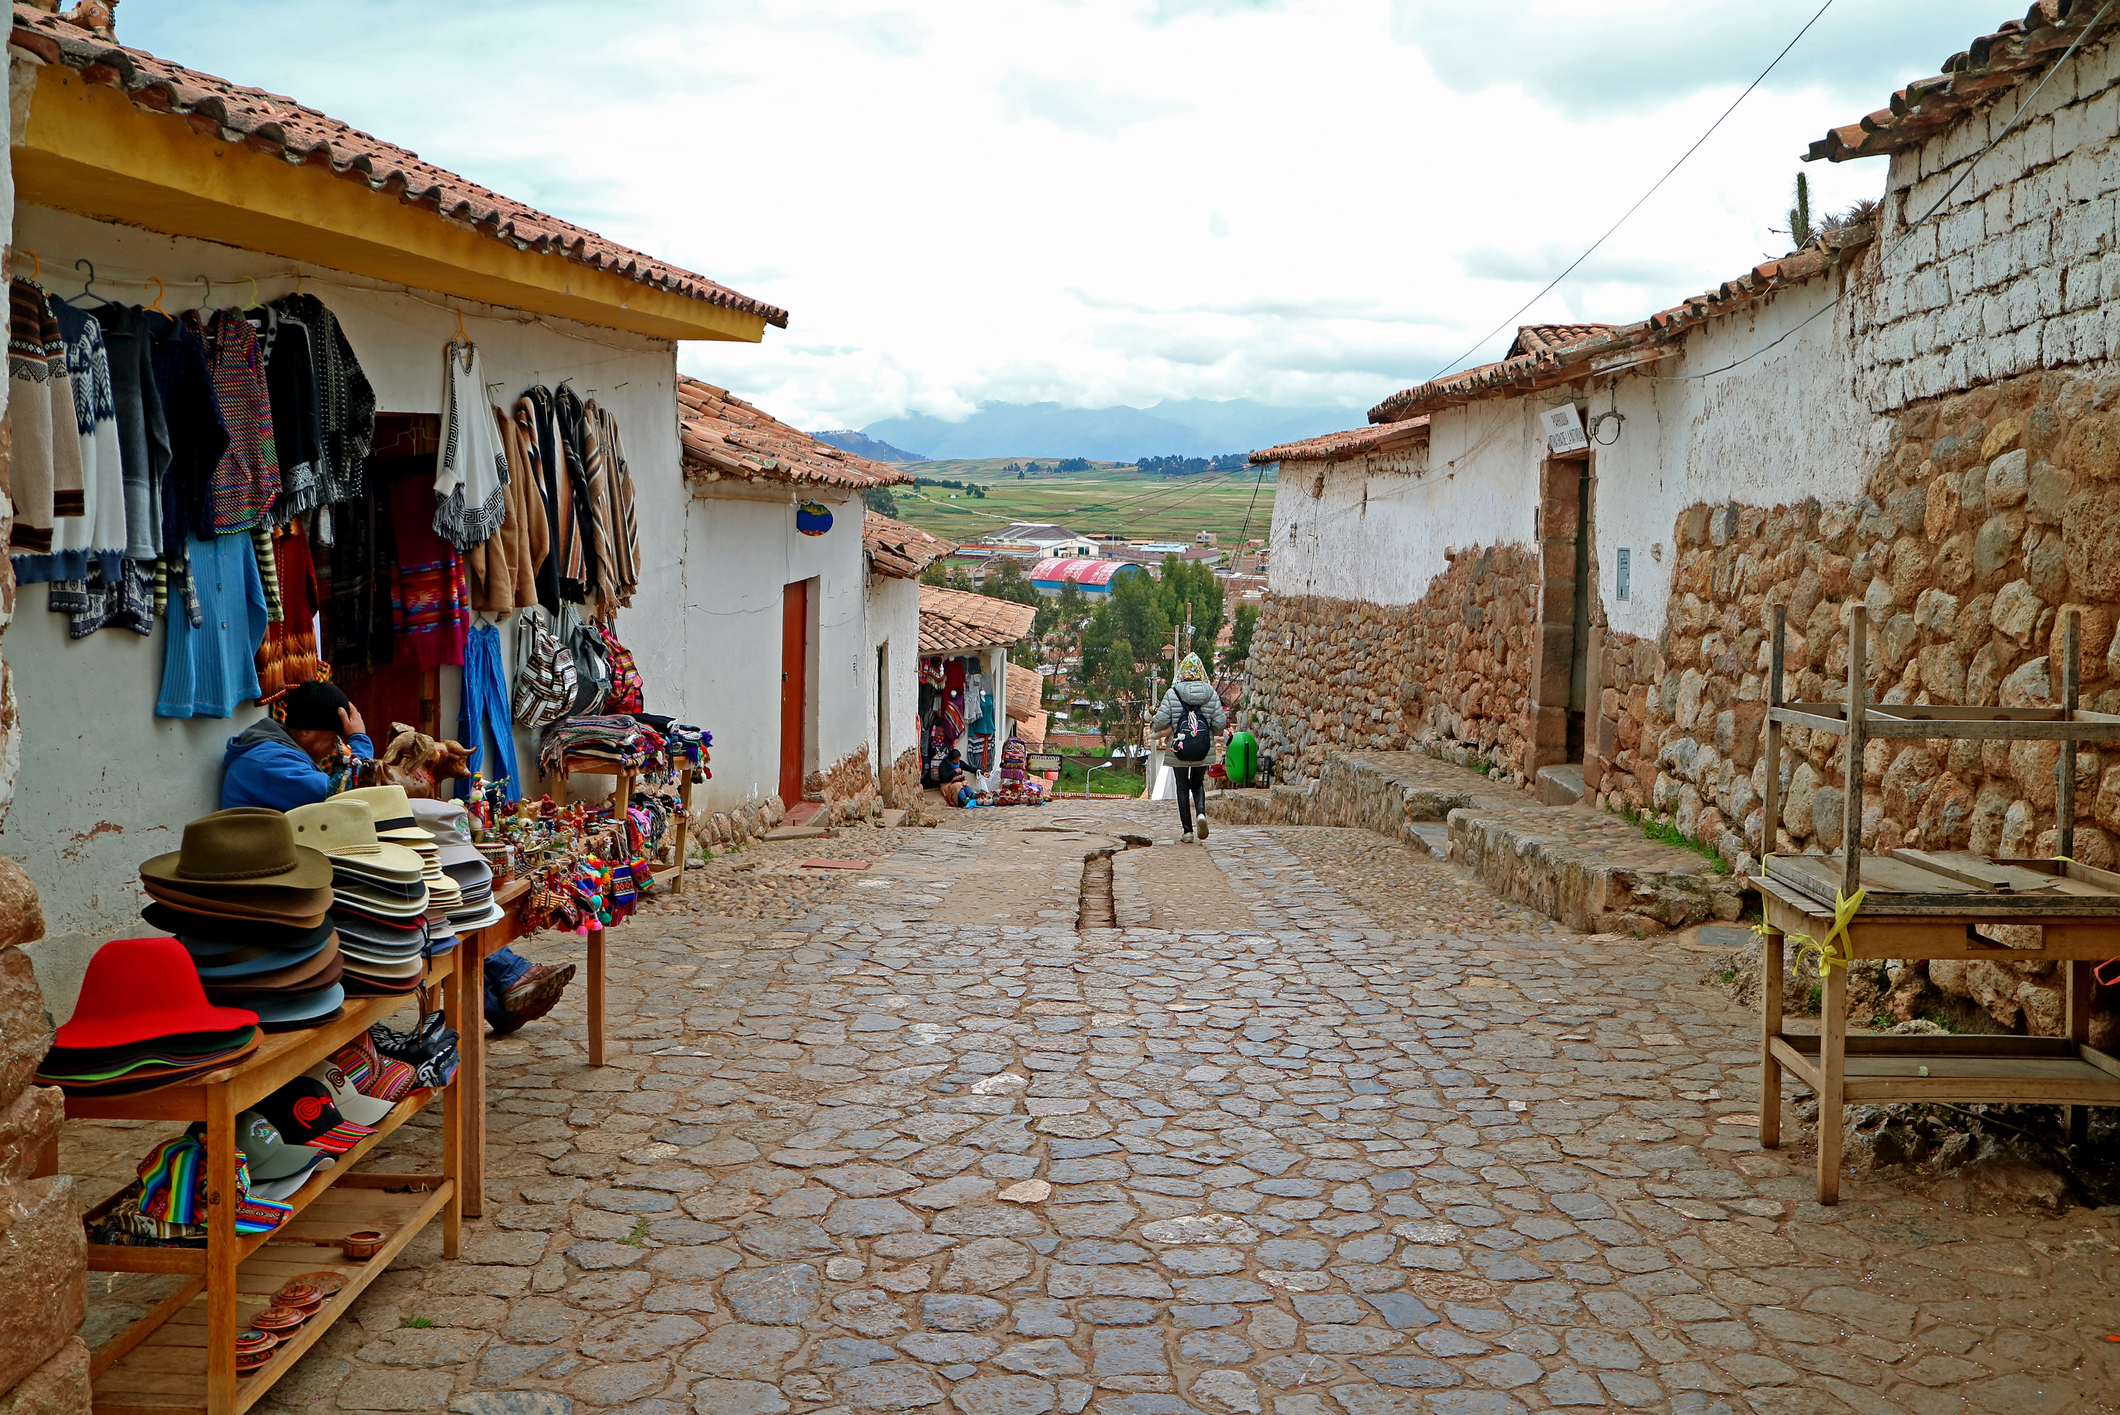 Cobblestone Walkway of Chinchero Village (iStock/PA)